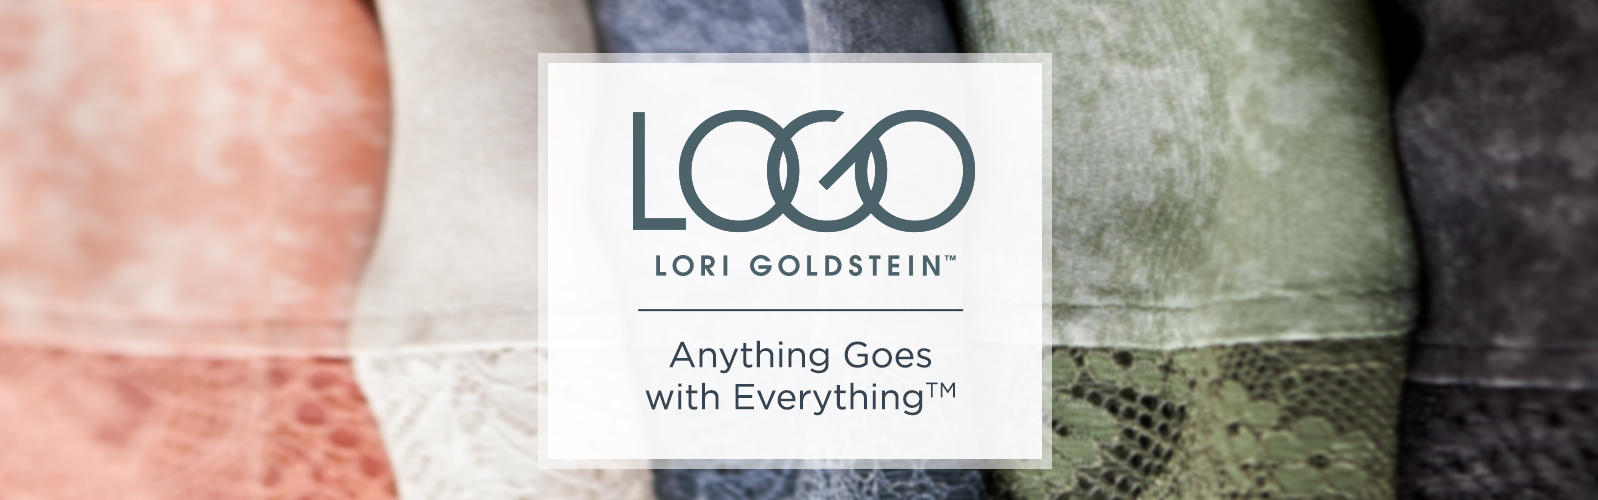 LOGO by Lori Goldstein Anything Goes with Everything TM